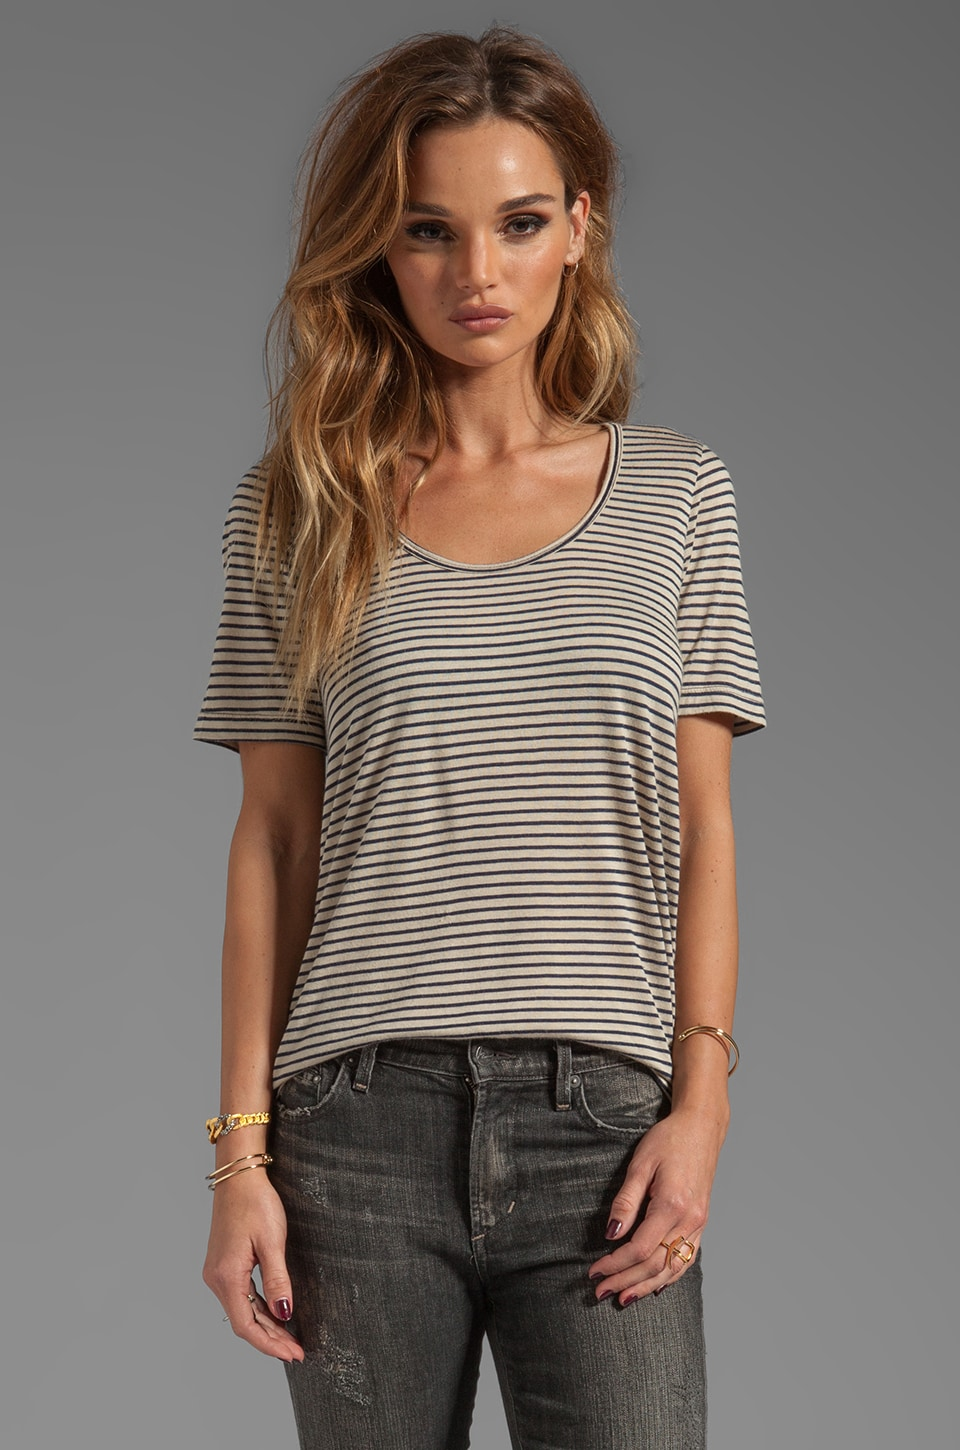 19 4t Short Sleeve Scoop Neck Tee in Navy/Beige Stripe